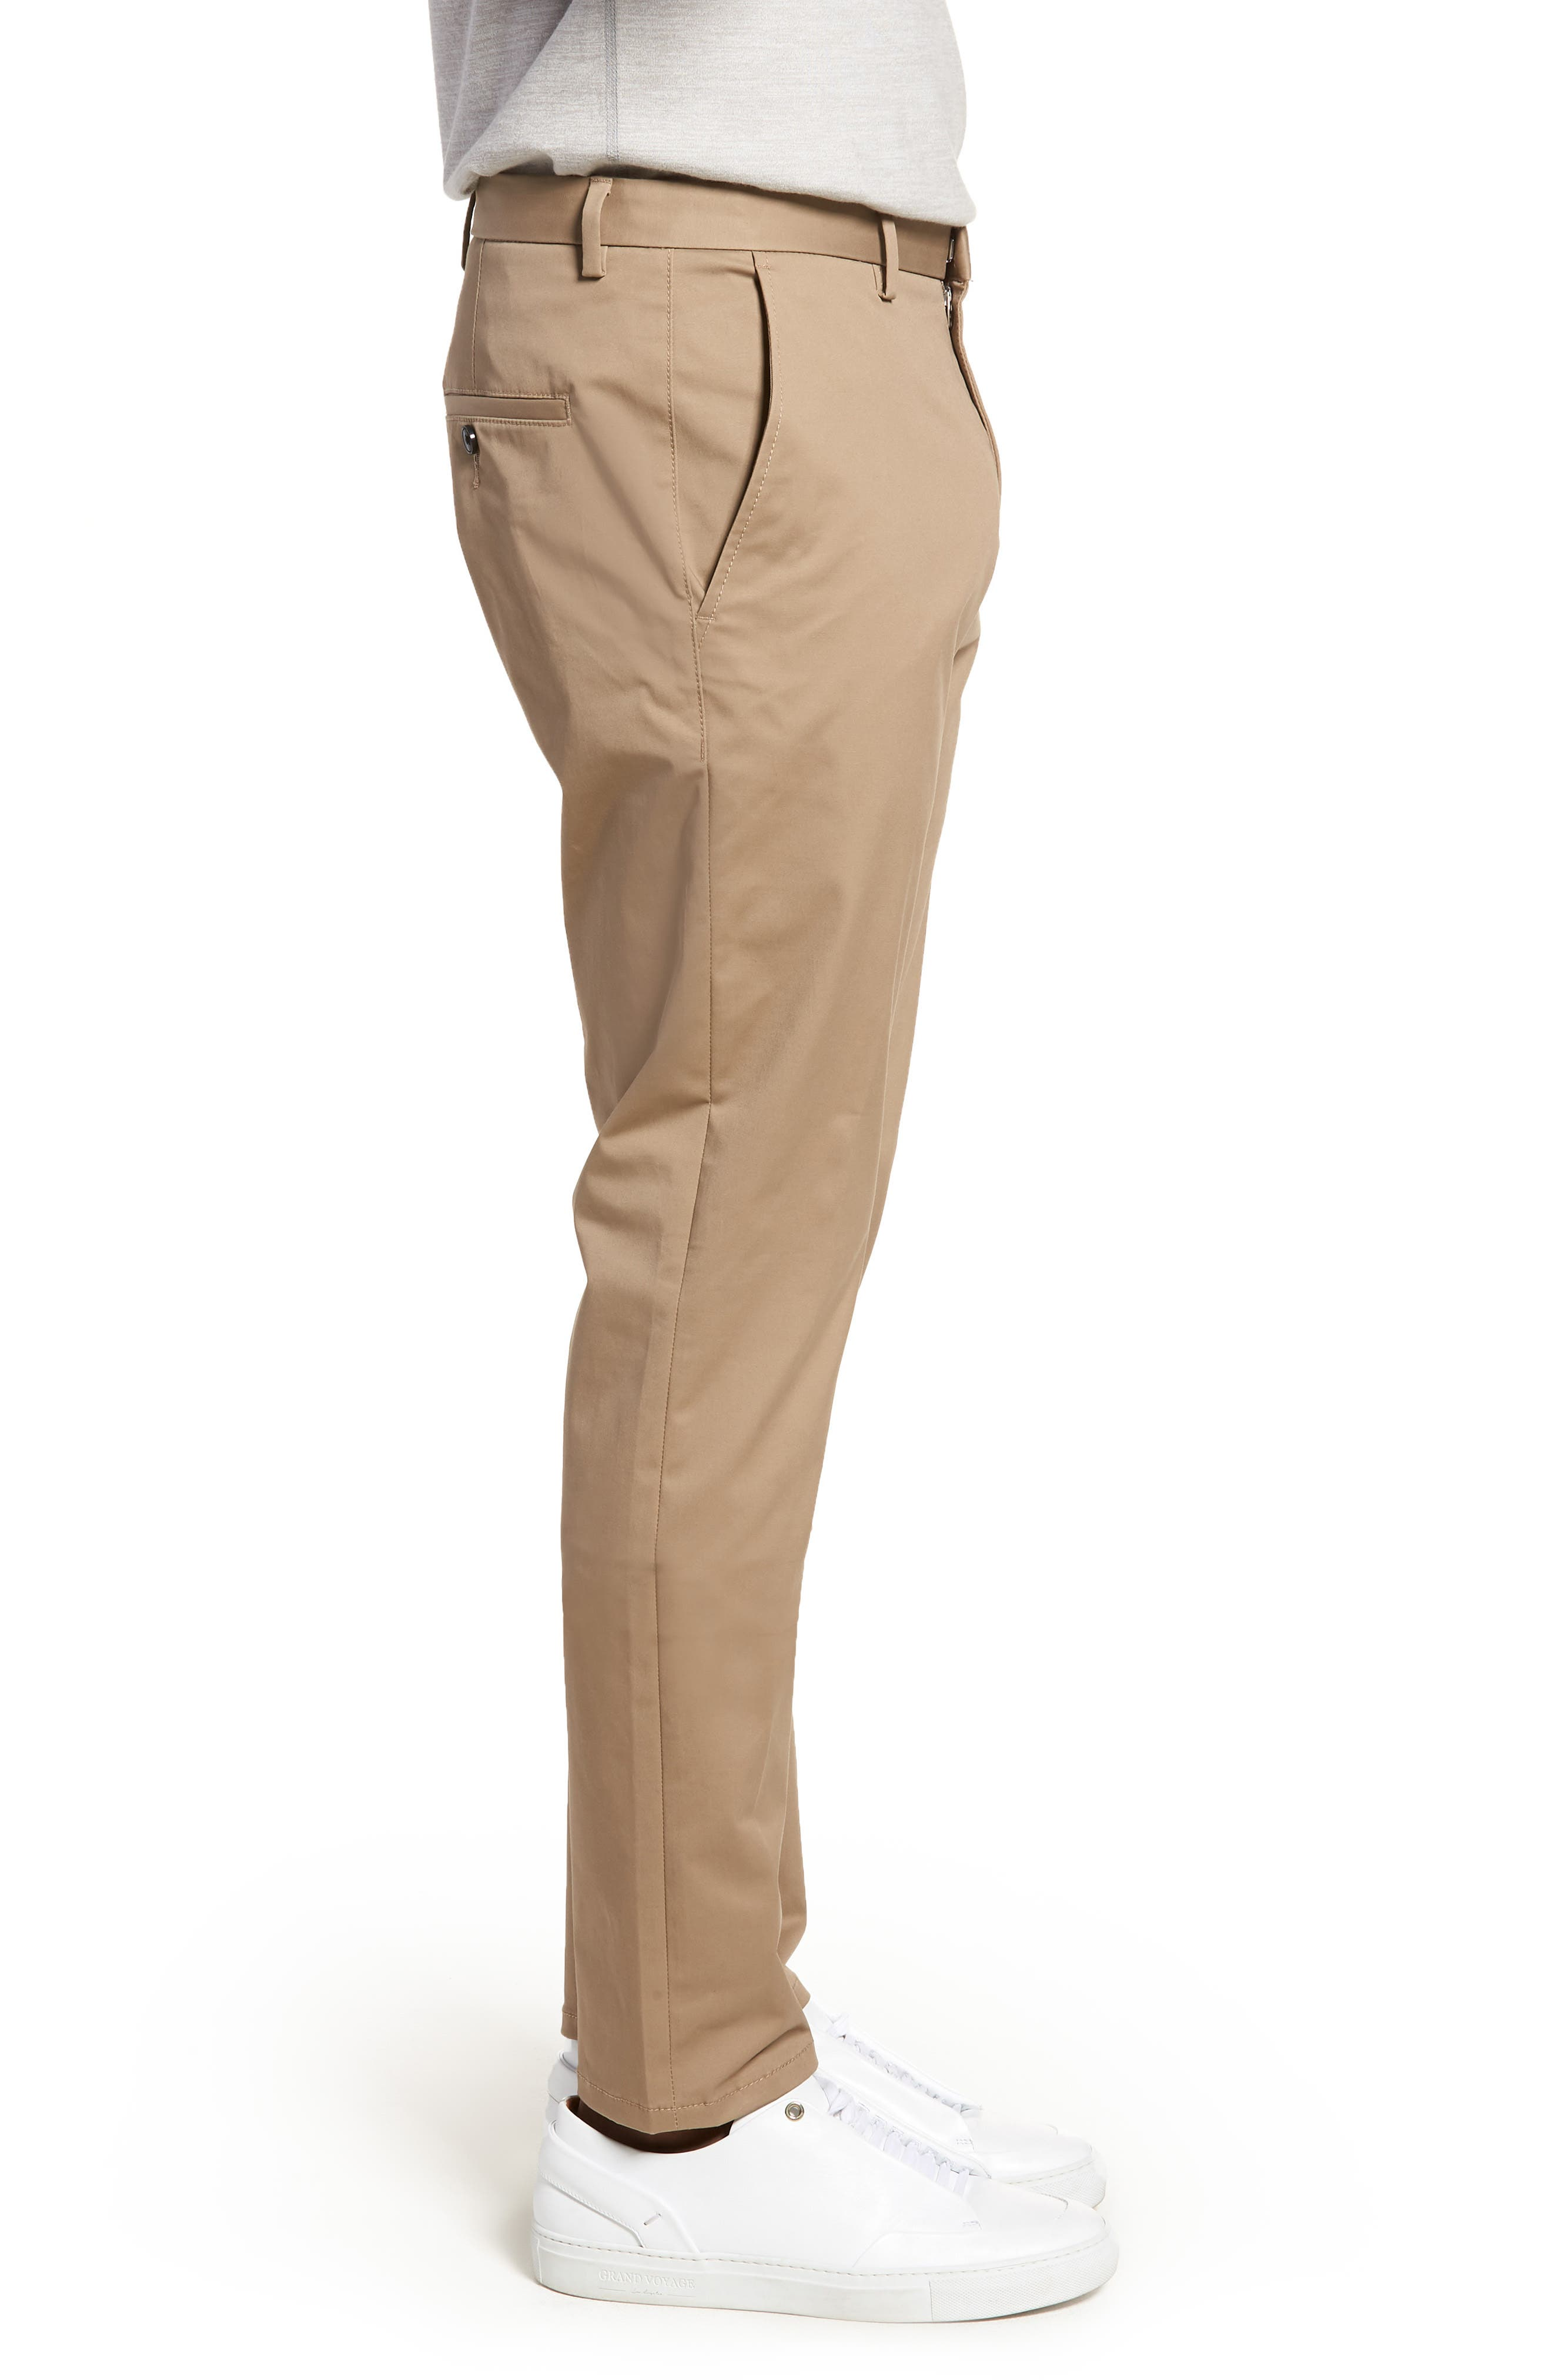 Helgo Flat Front Stretch Pants,                             Alternate thumbnail 3, color,                             265